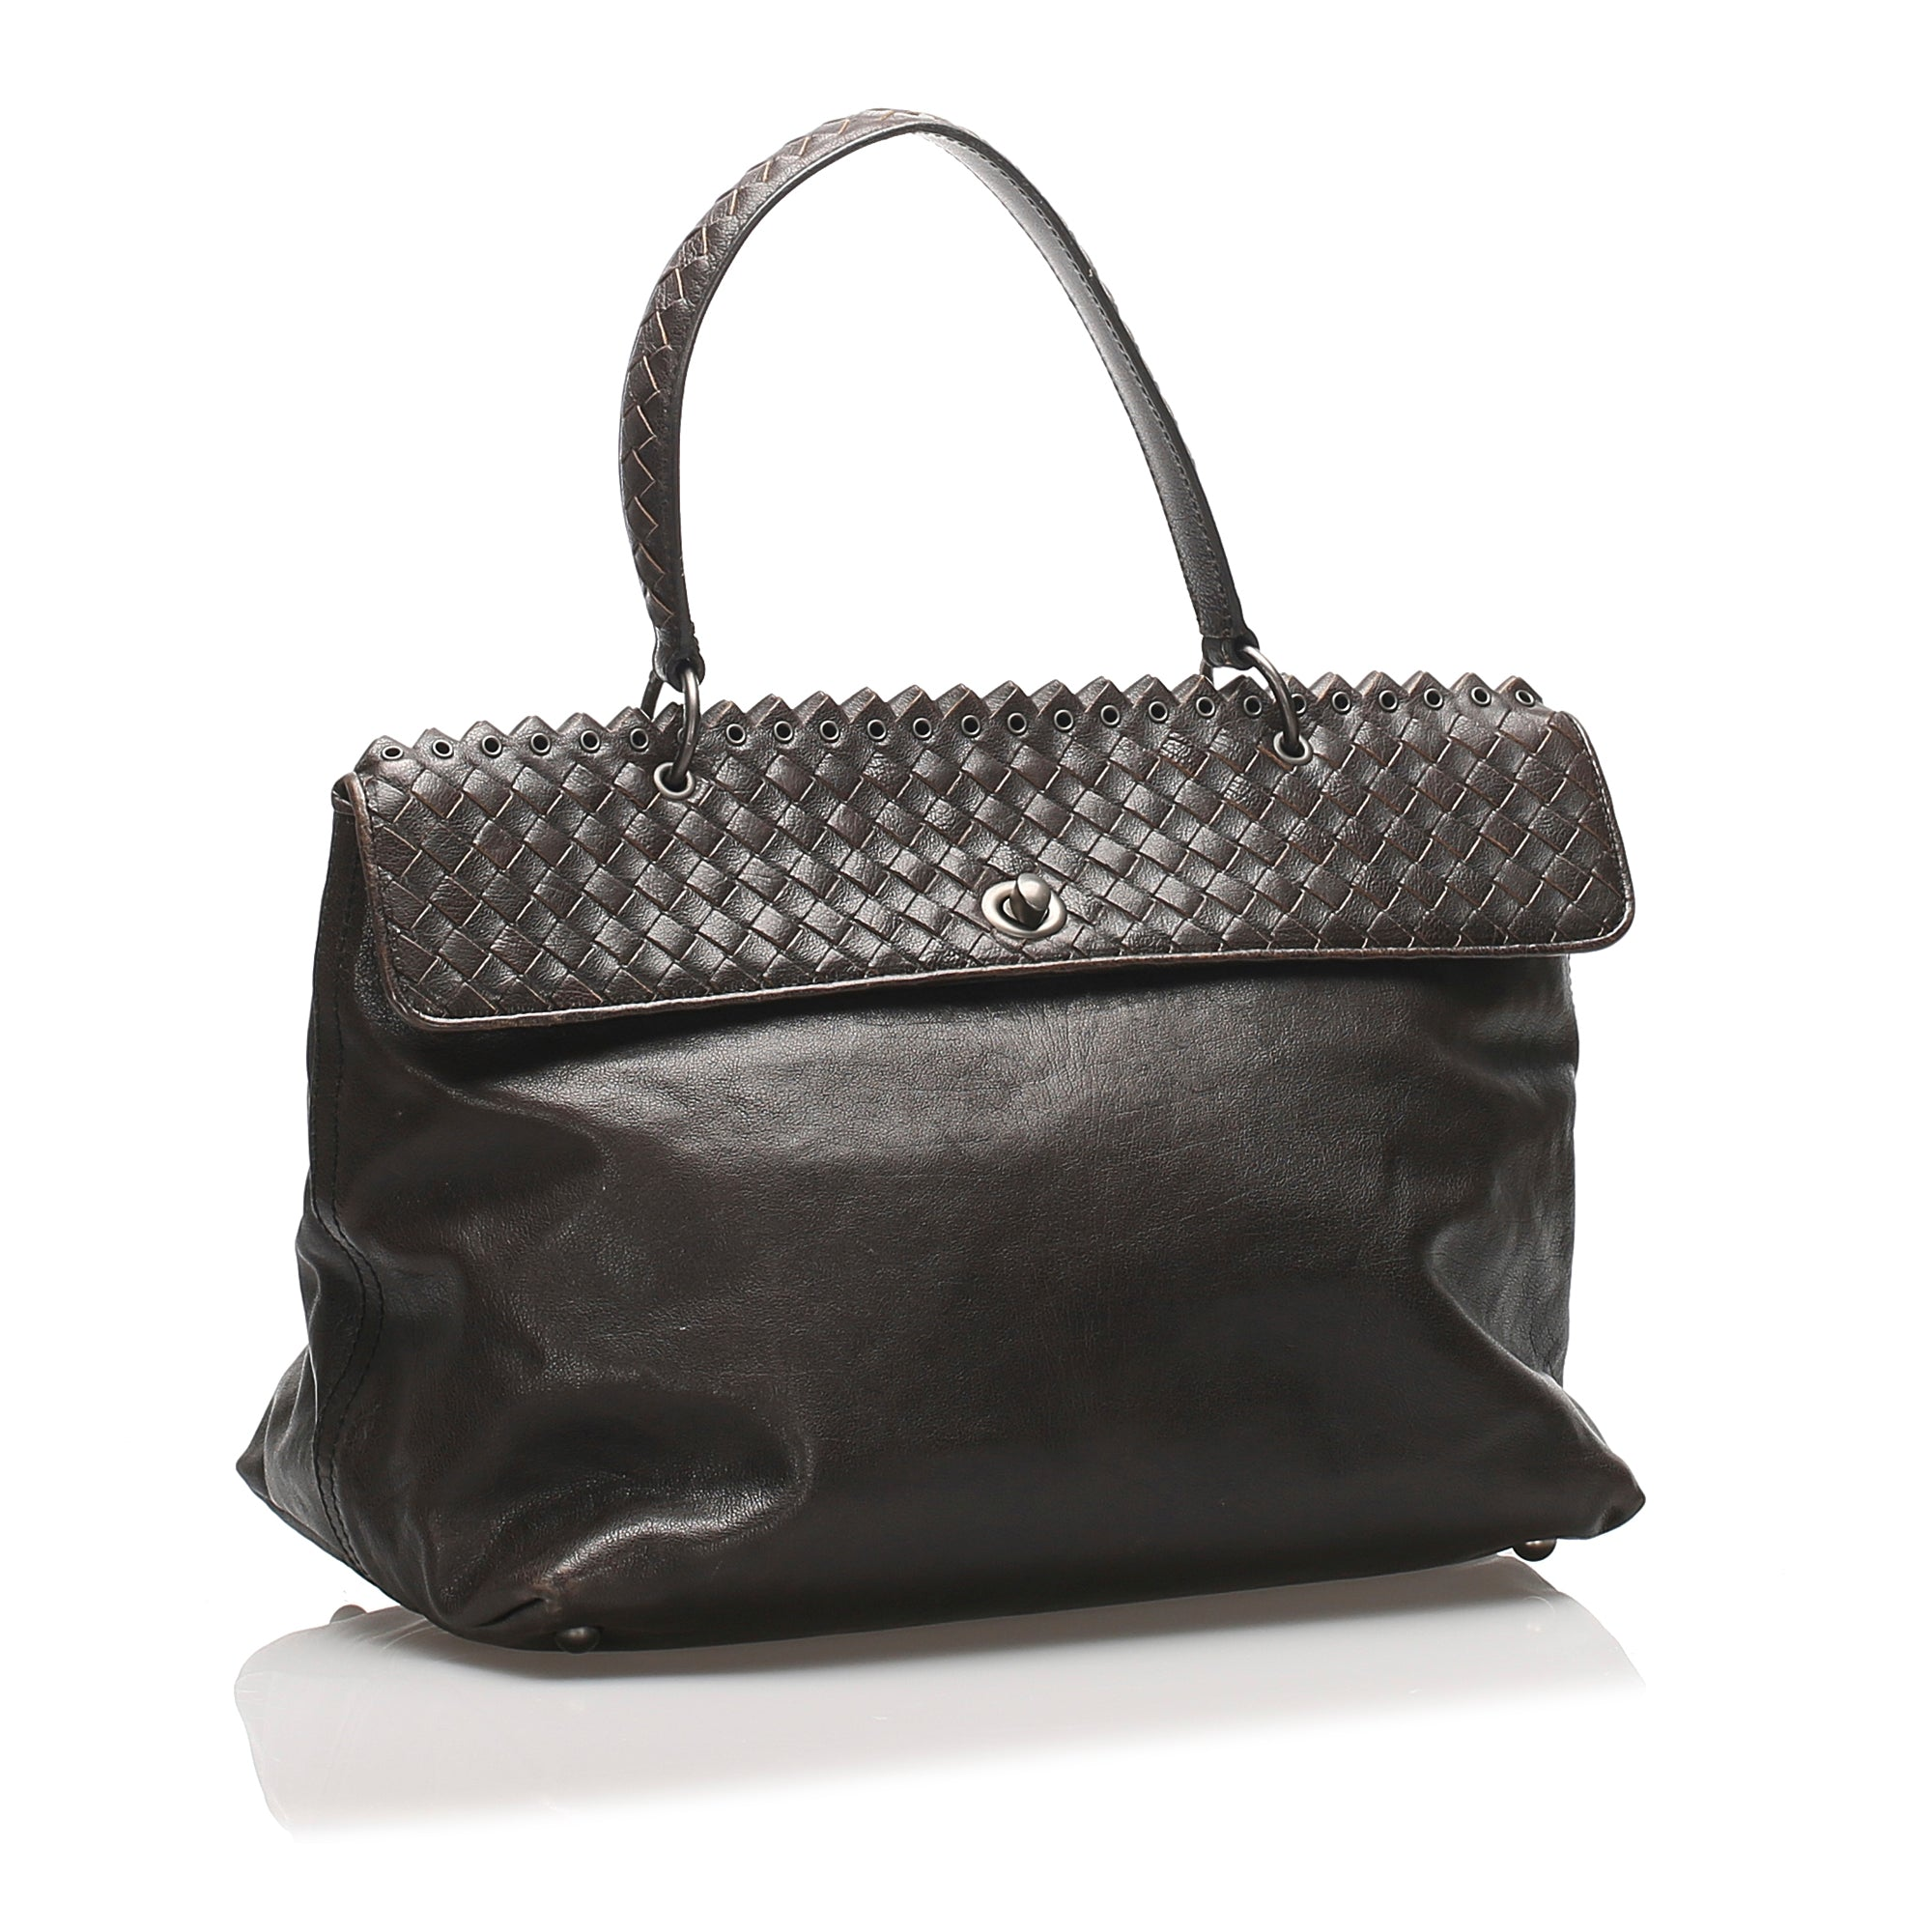 Bottega Veneta Black Intrecciato Leather Handbag